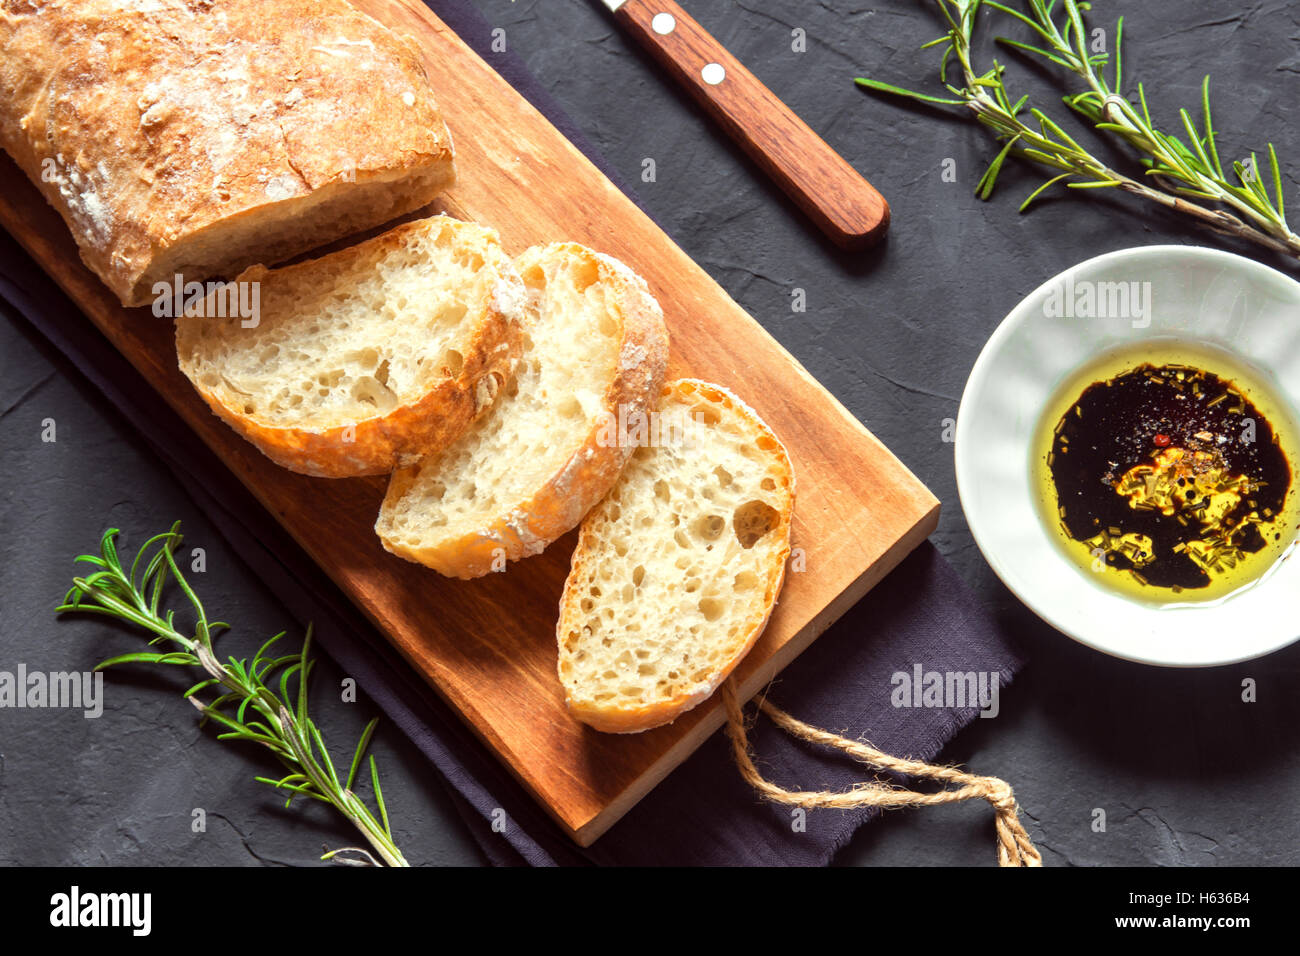 Italian bread Ciabatta with olive oil and rosemary on black background - fresh homemade bread bakery - Stock Image